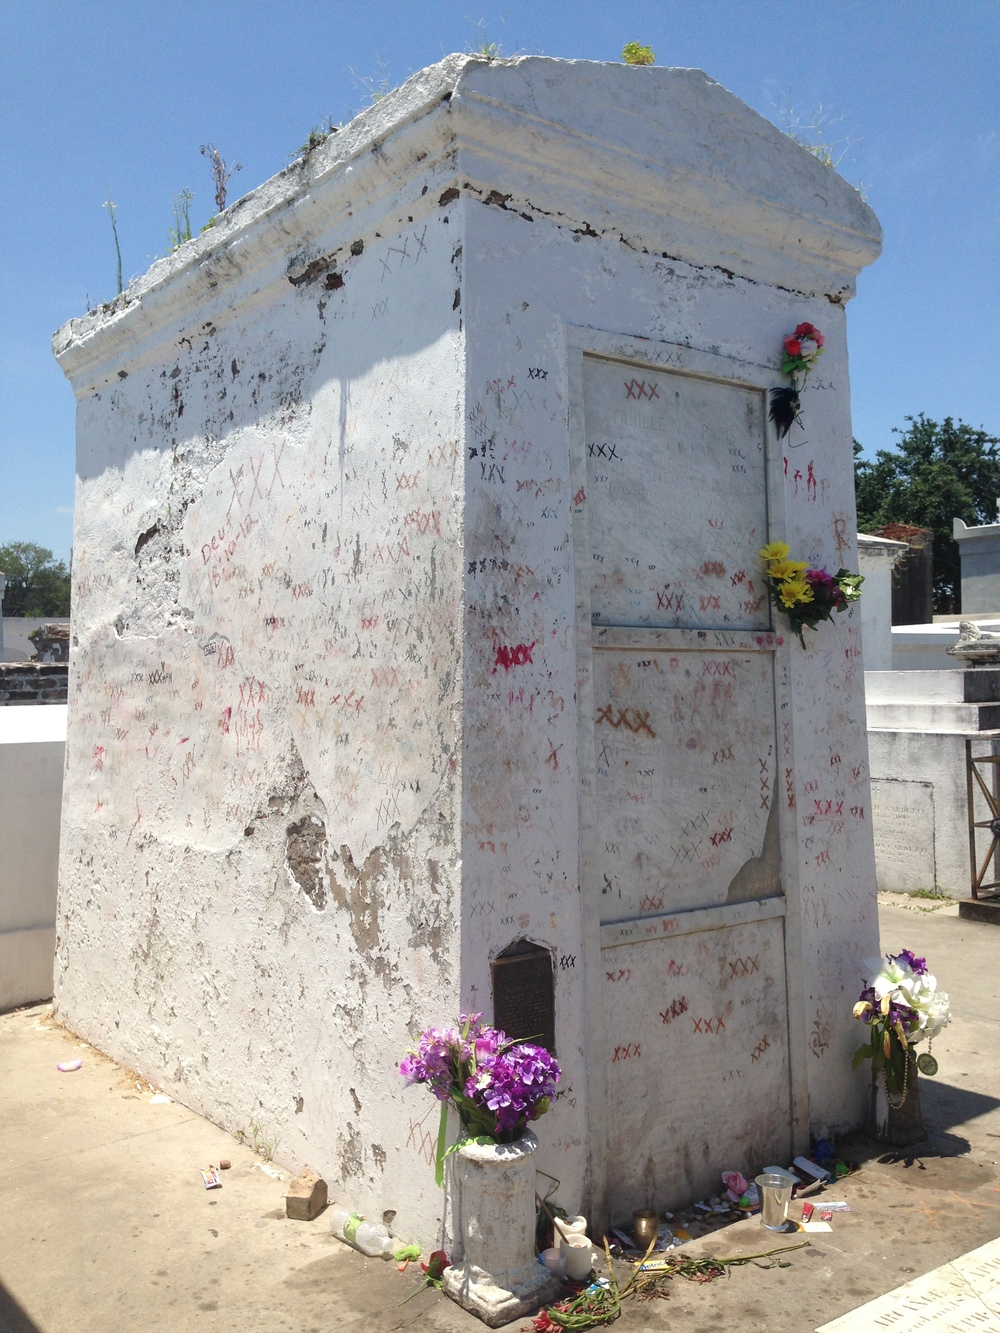 Marie Laveau tomb prior to renovation in Nov 2014